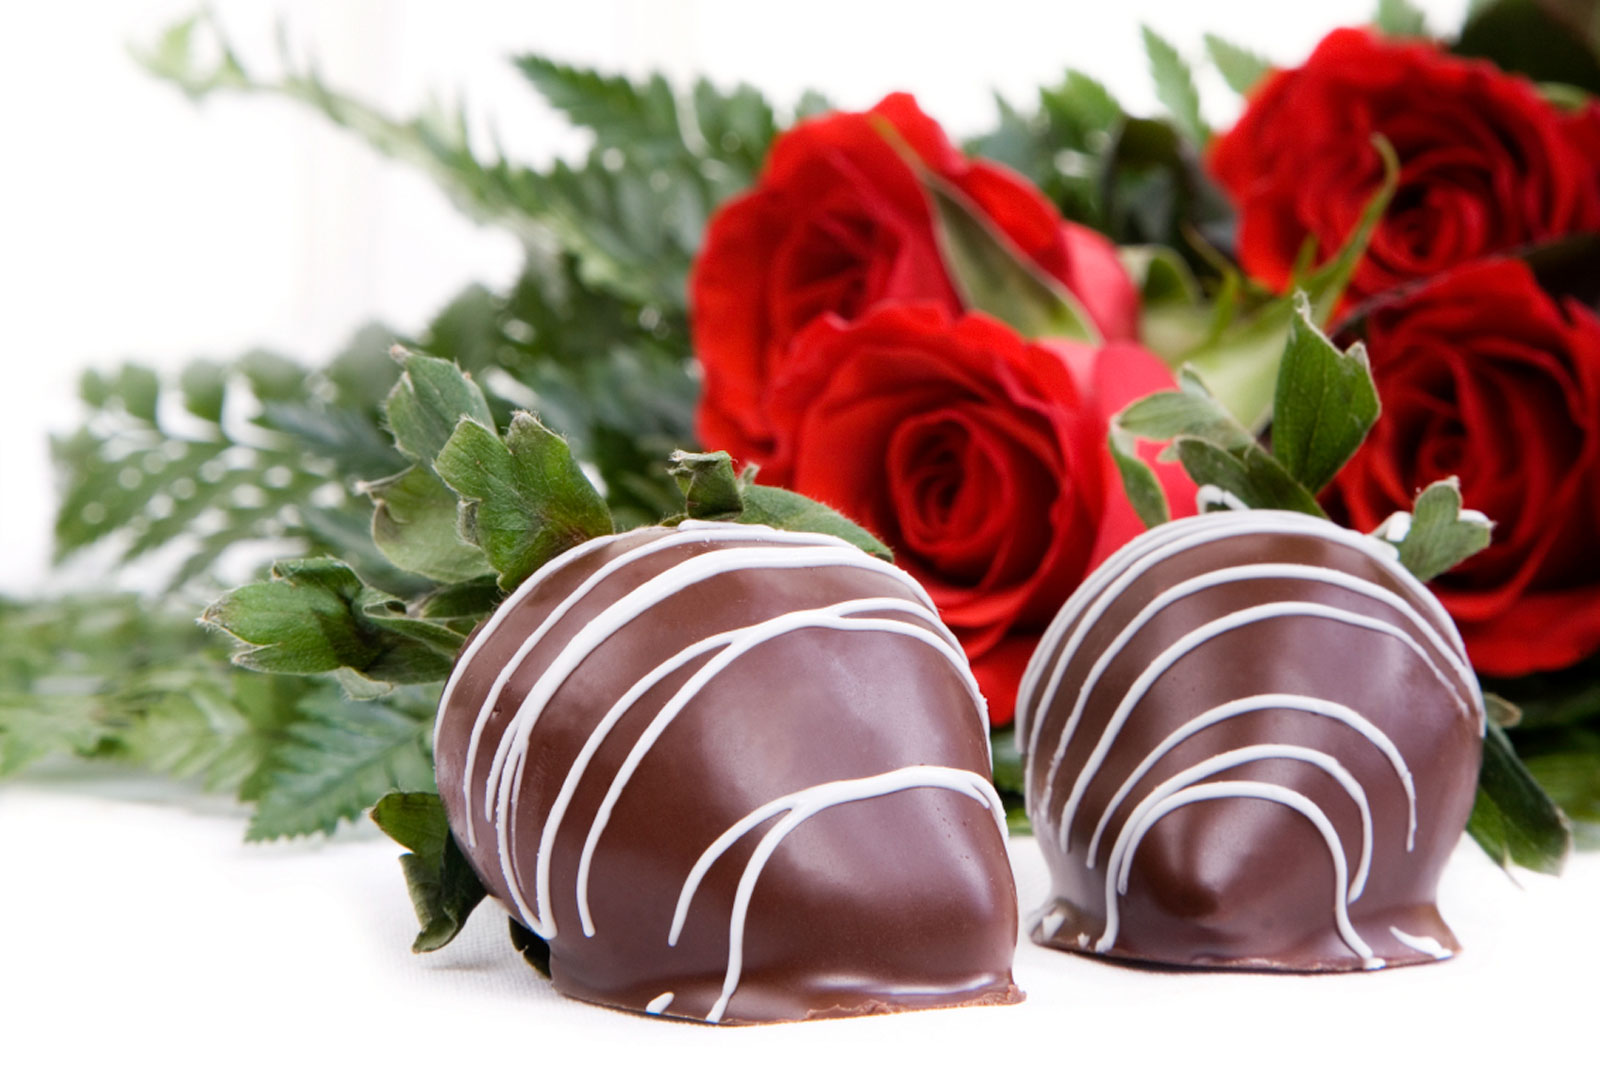 Pin Dark Chocolate Dipped Strawberries on Pinterest